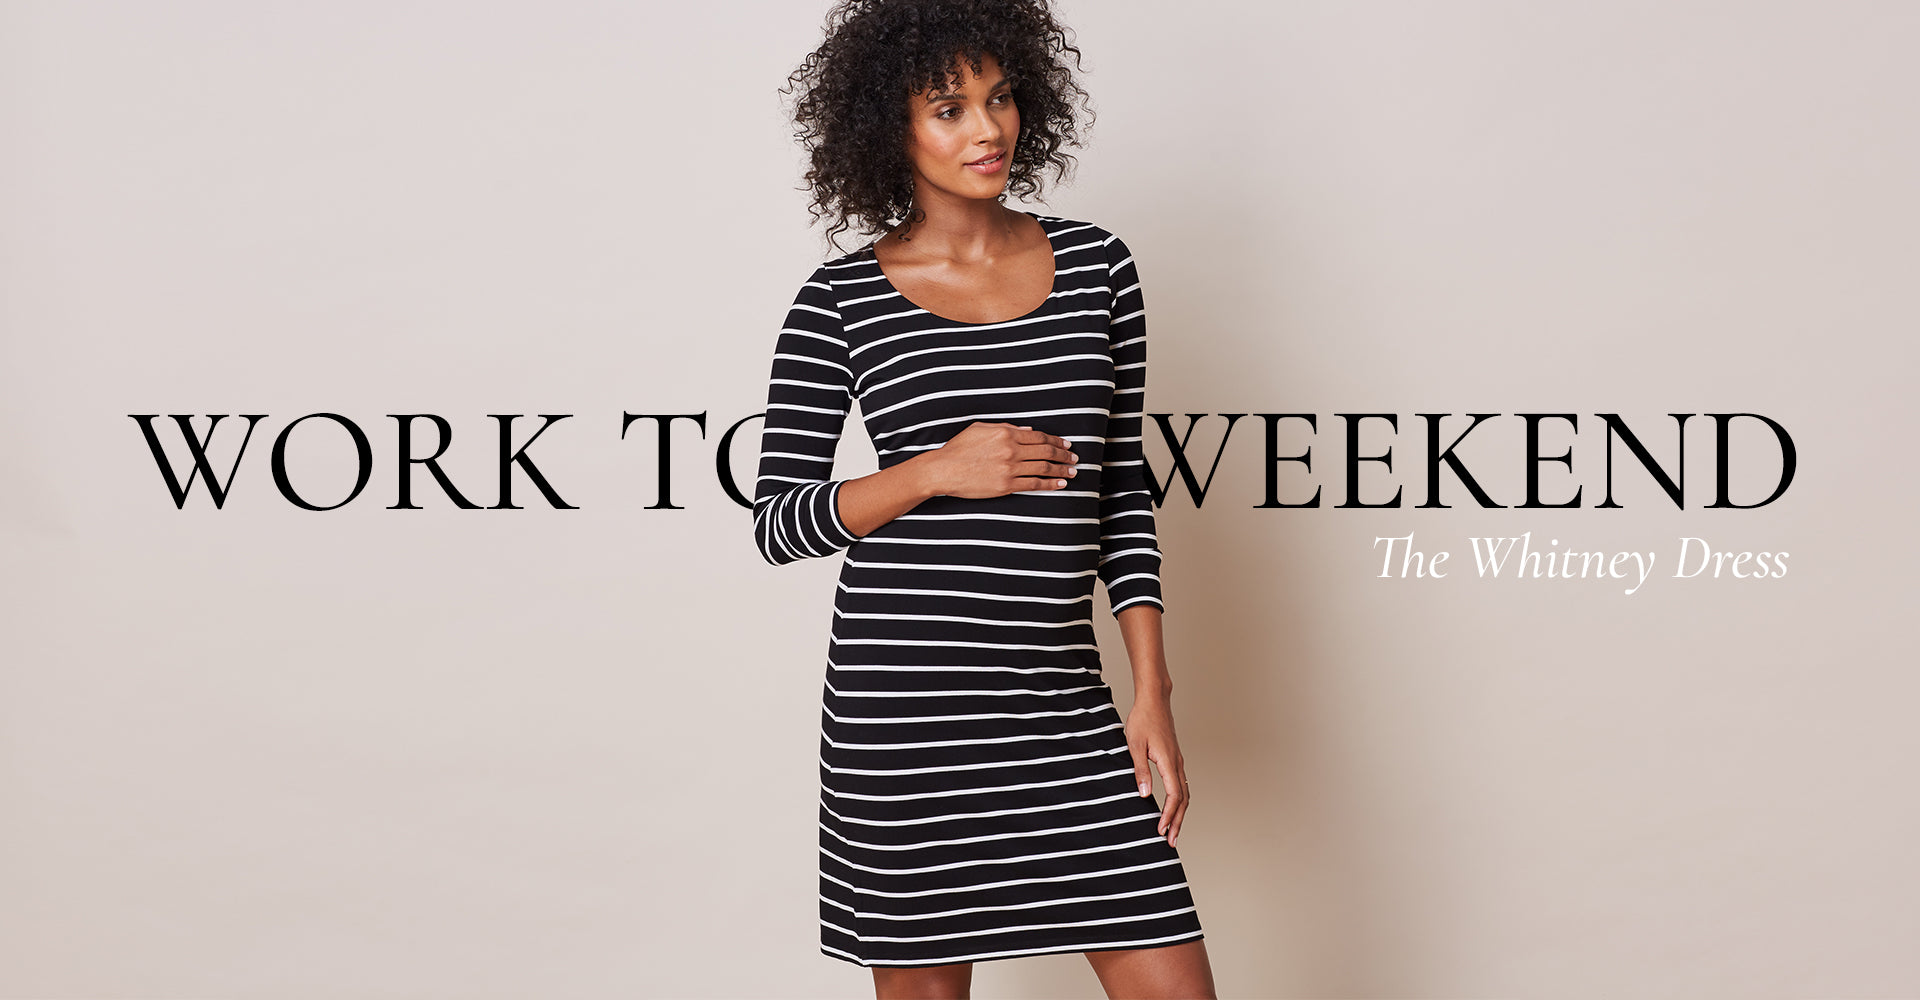 Work to weekend with the Whitney Dress